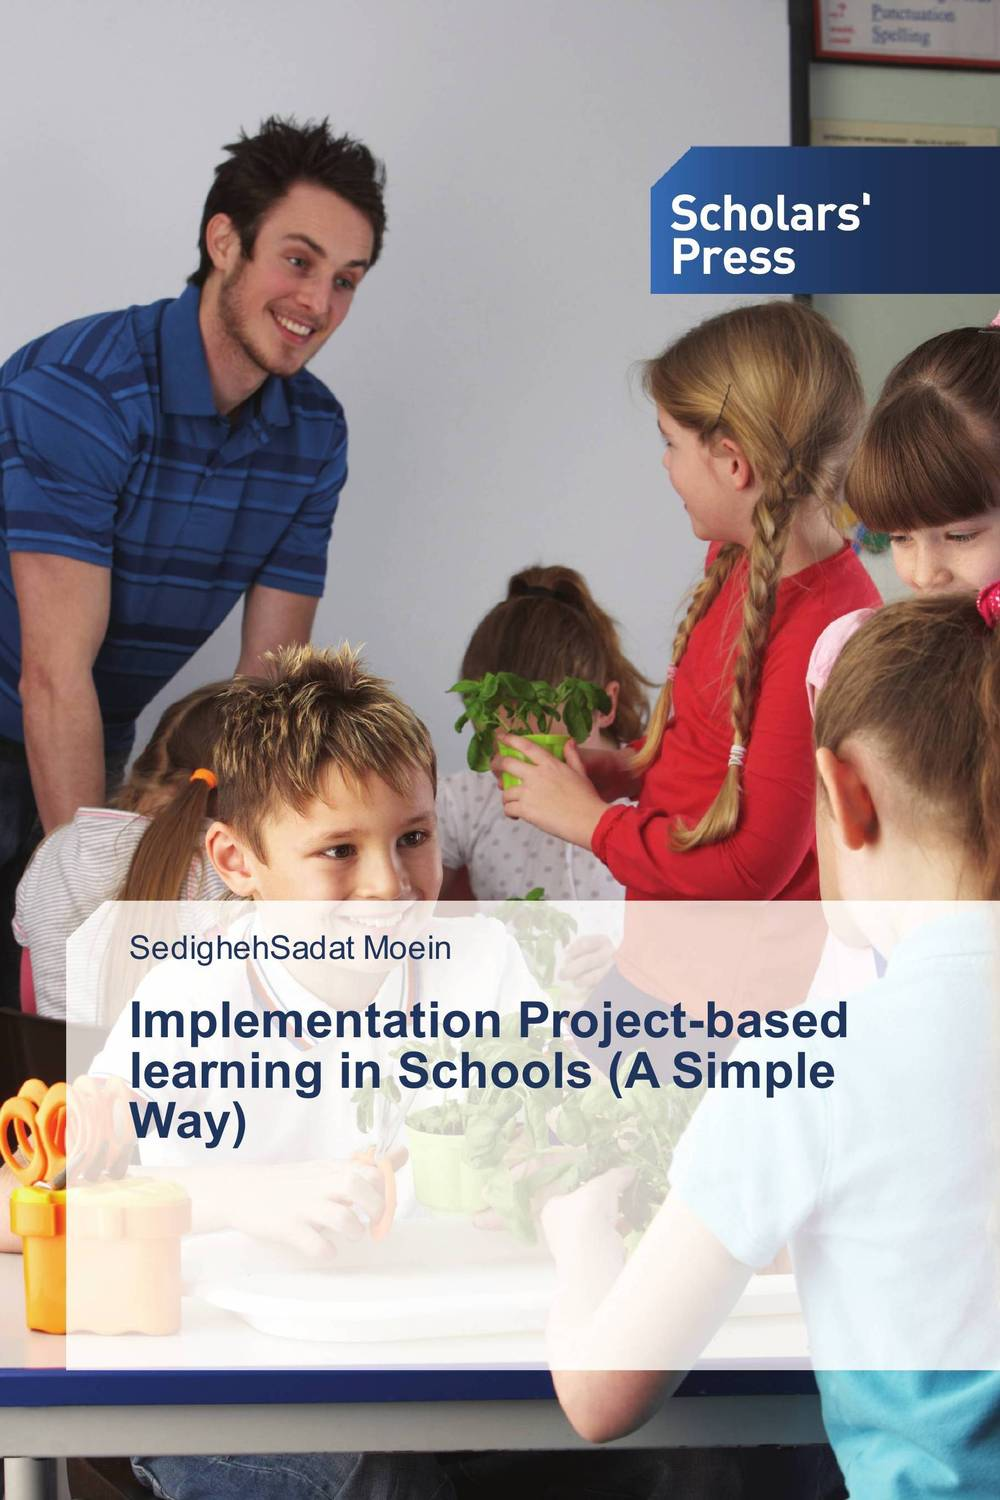 Implementation Project-based learning in Schools (A Simple Way) pso based evolutionary learning